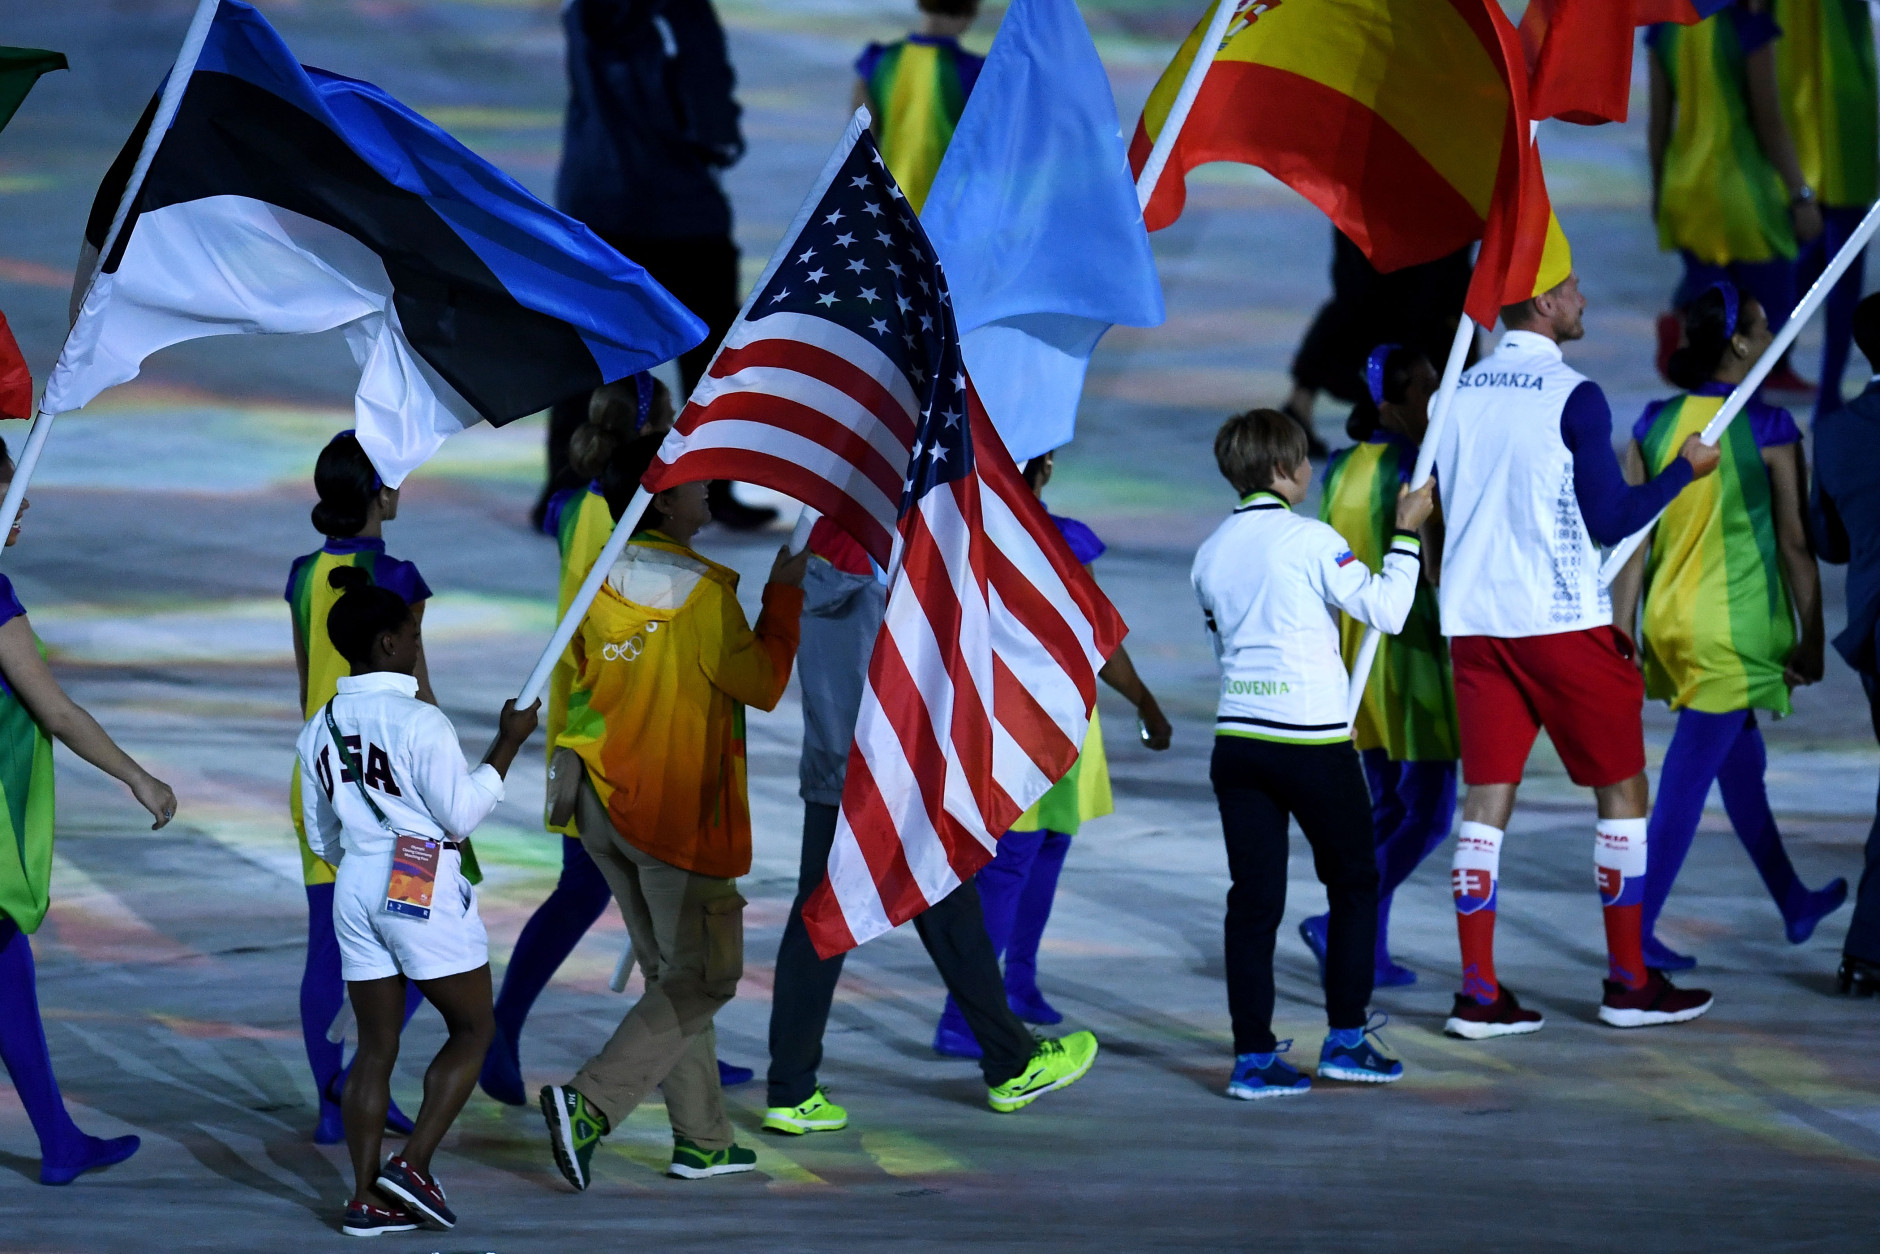 """RIO DE JANEIRO, BRAZIL - AUGUST 21: Flag bearer Simone Biles of United States walks during the """"Heroes of the Games"""" segment during the Closing Ceremony on Day 16 of the Rio 2016 Olympic Games at Maracana Stadium on August 21, 2016 in Rio de Janeiro, Brazil.  (Photo by David Ramos/Getty Images)"""